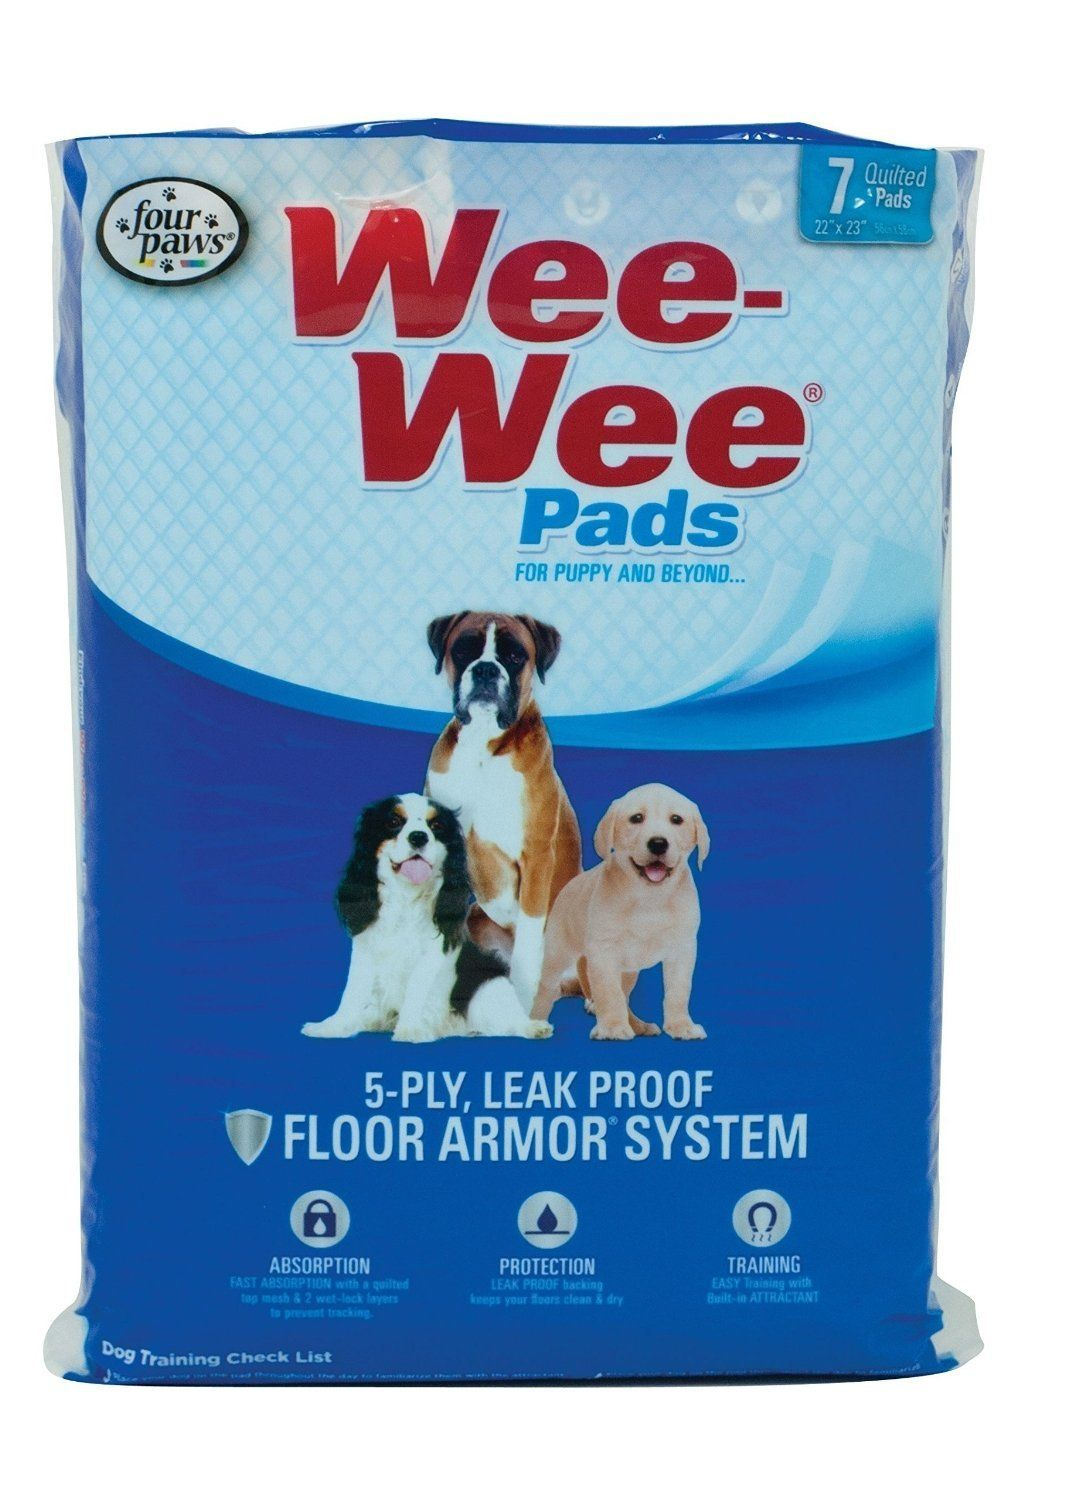 7 Pack 5 Ply Leak Proof Floor Armor System Pads For Dog Click